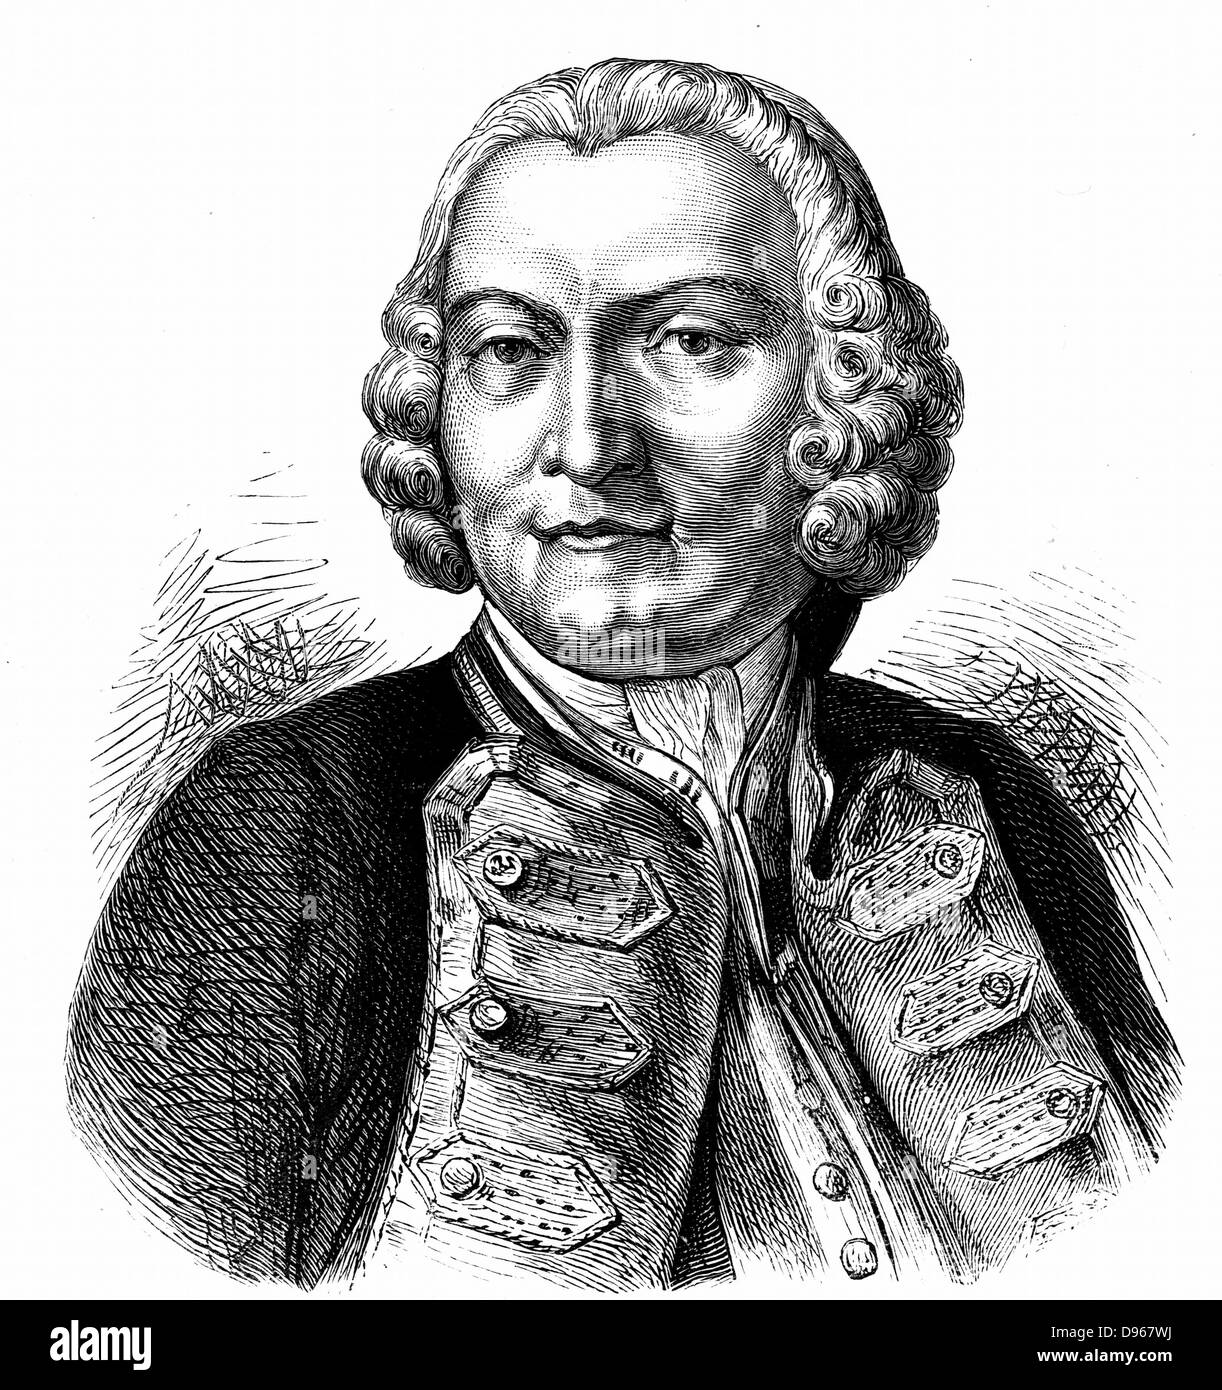 George Anson, Baron Anson (1697-1762) English naval commander. In command of Pacific squadron he circumnavigated - Stock Image